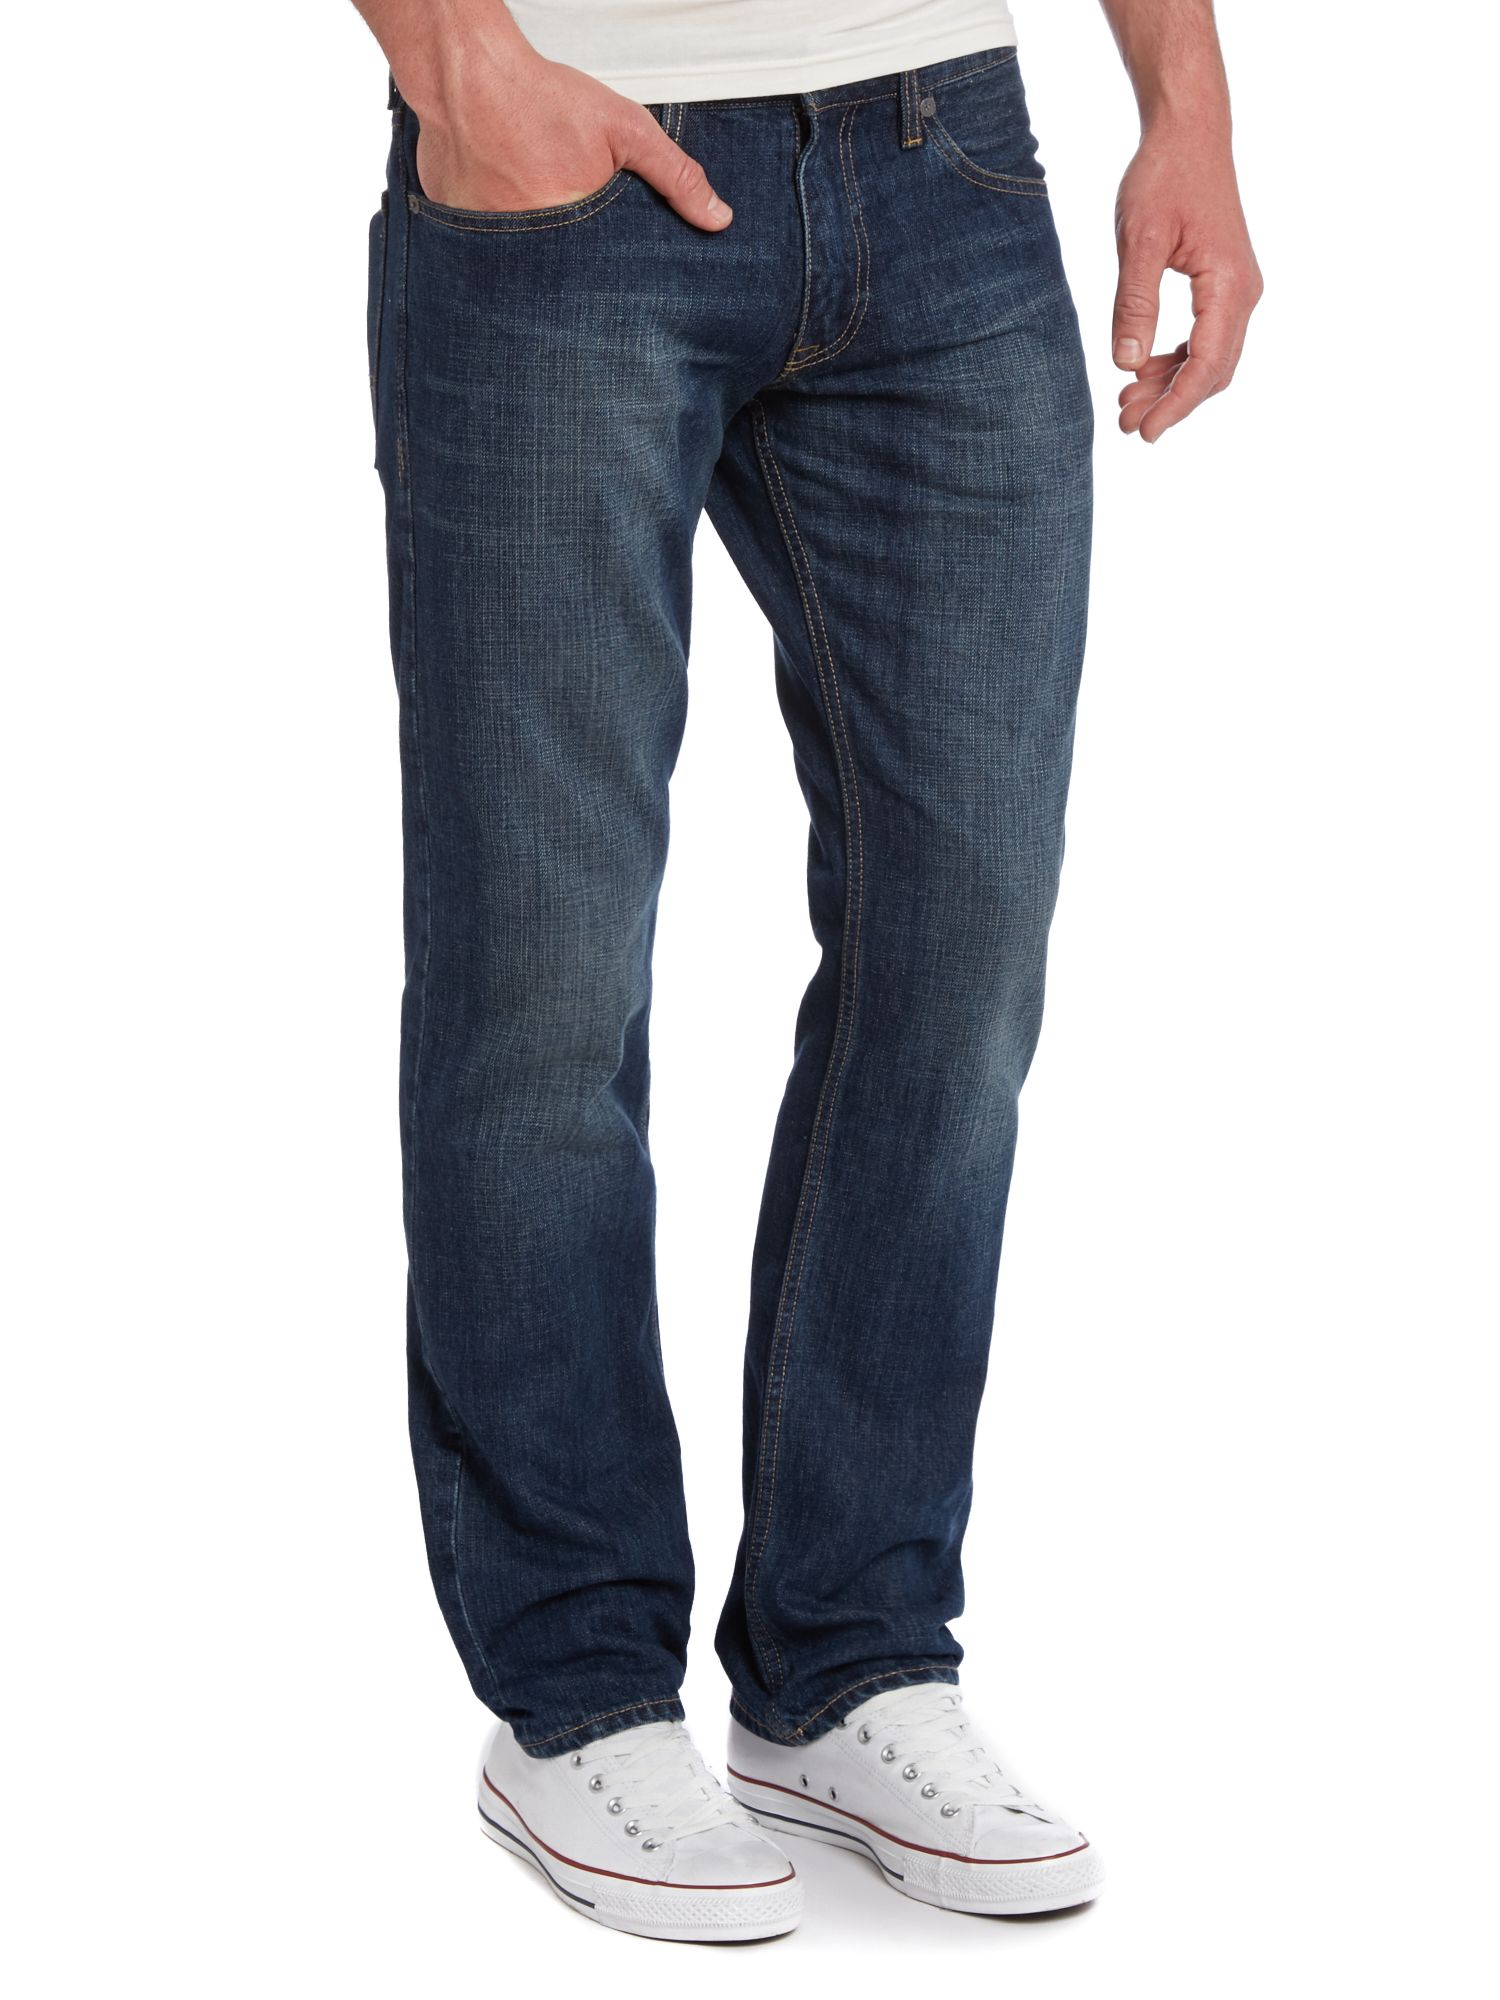 Sequel york m jeans